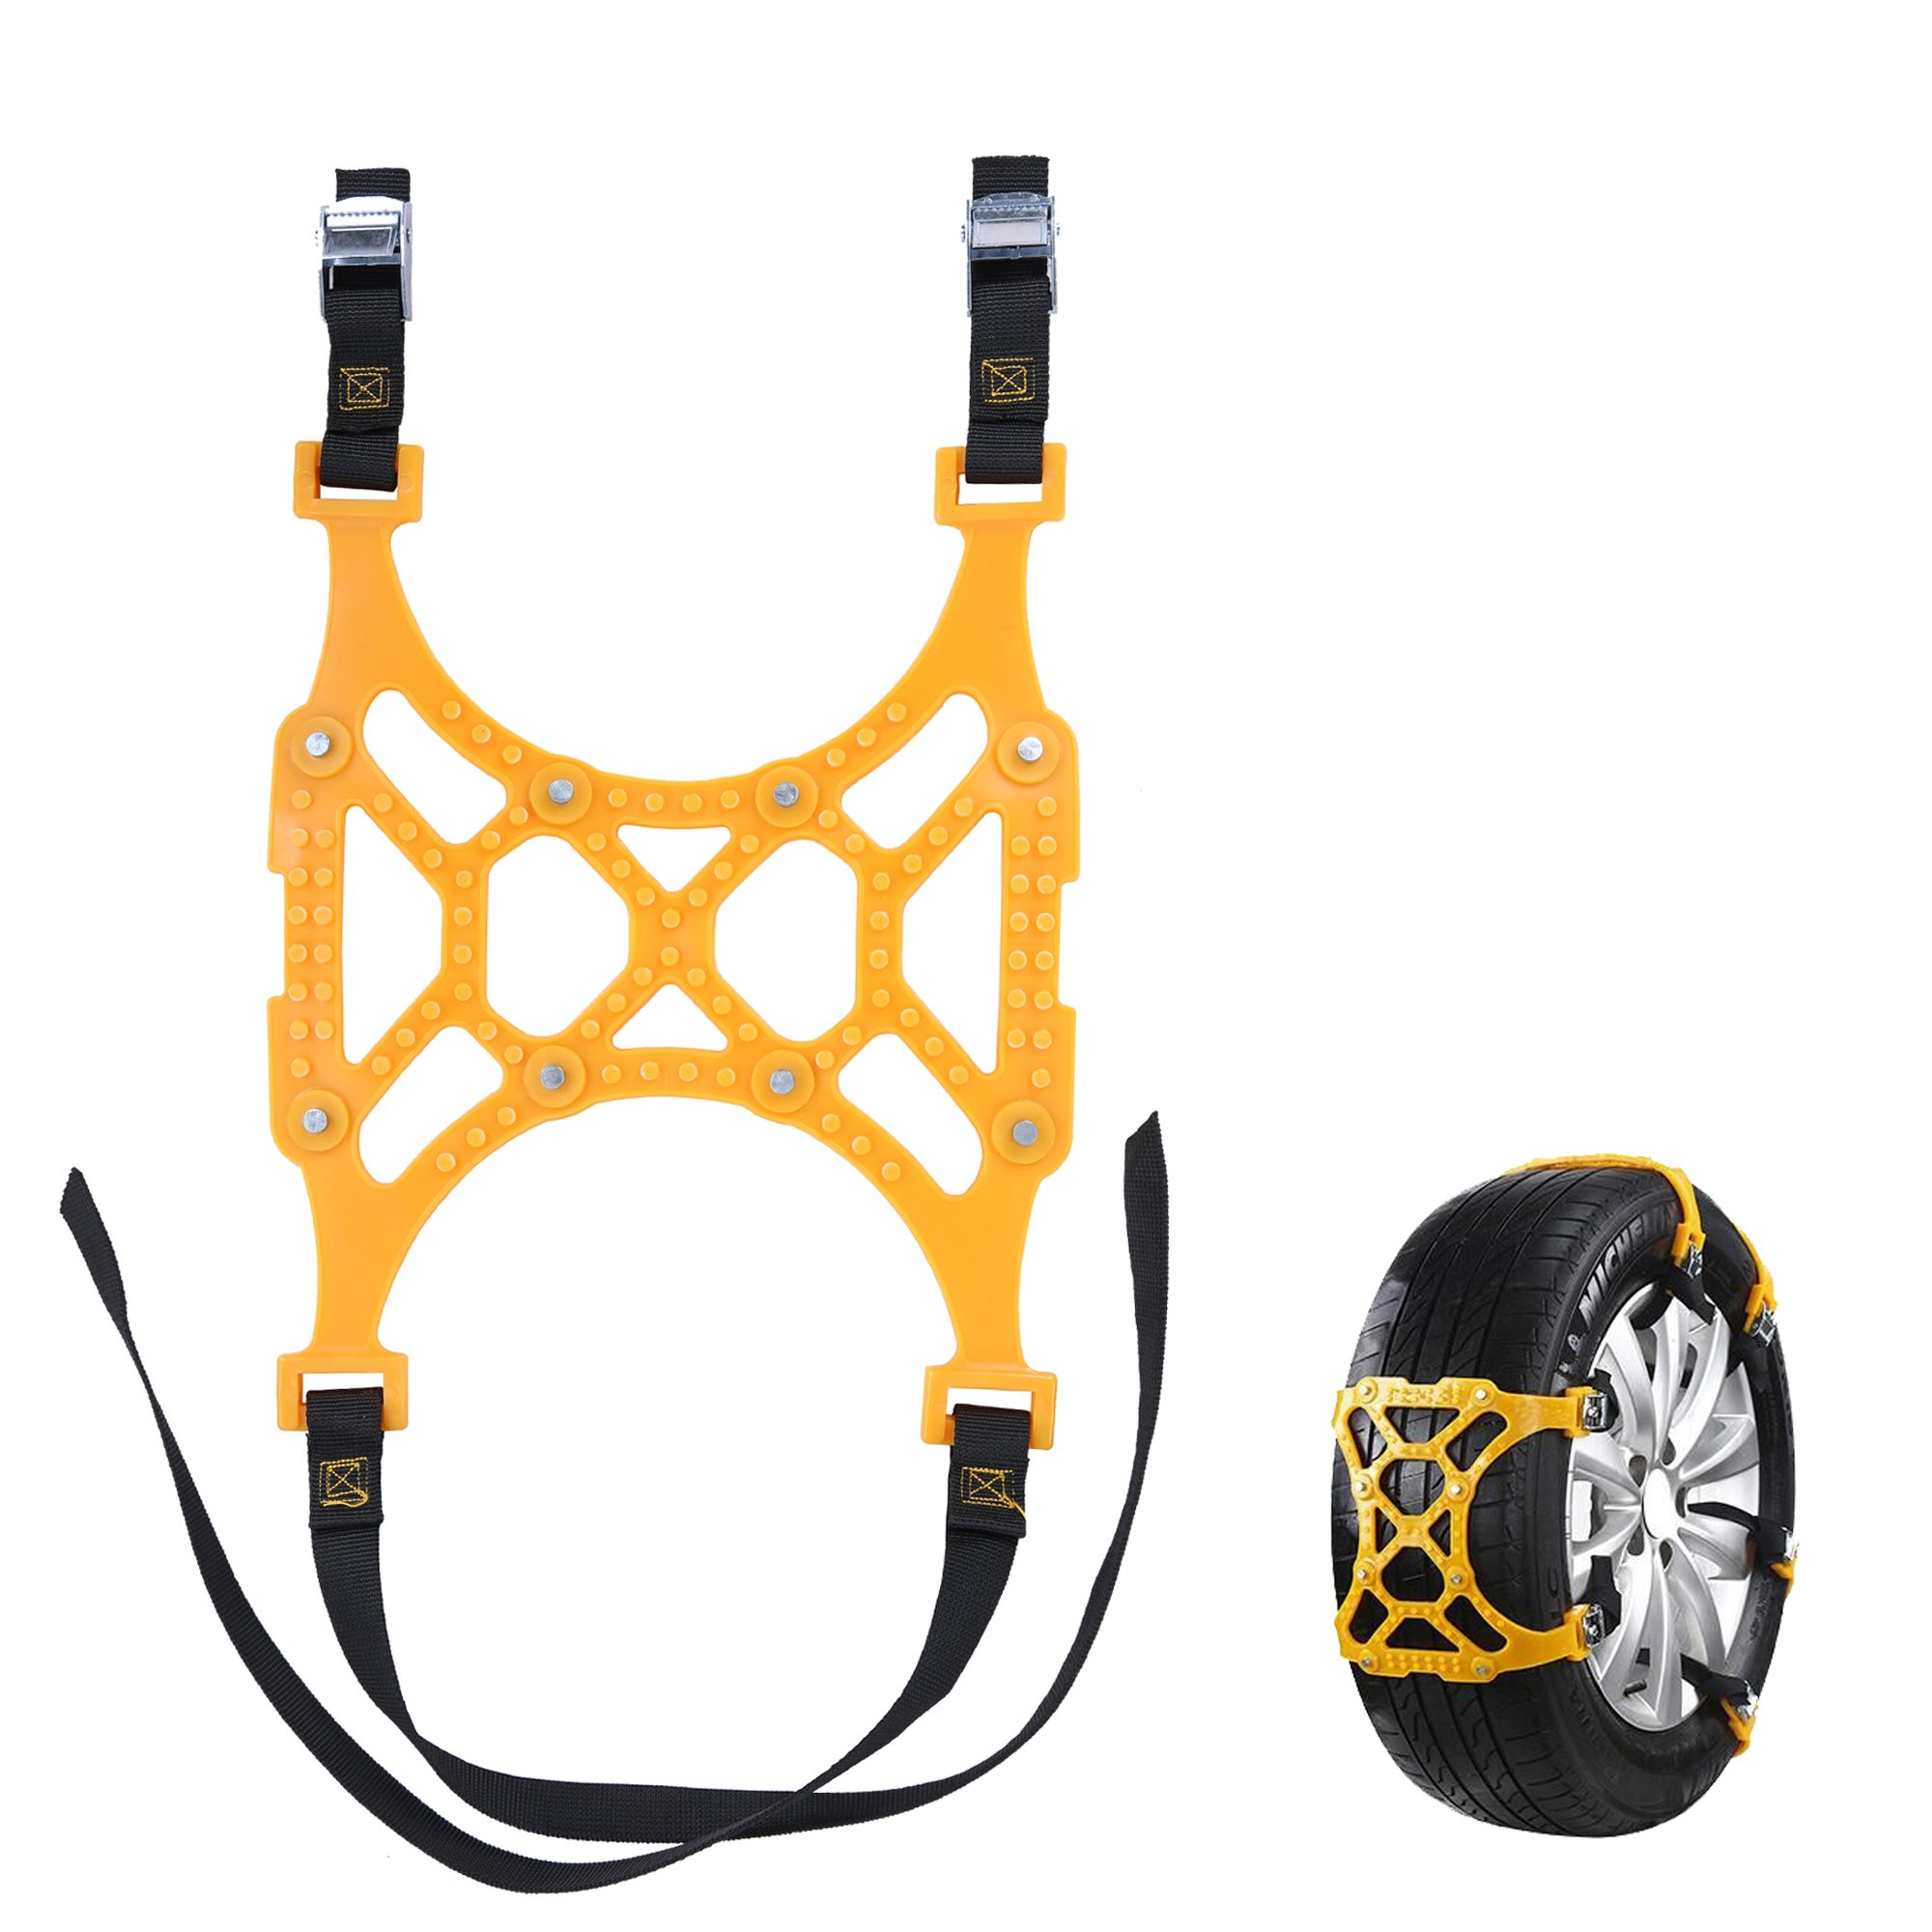 Leadallway Two Tires 6PC Car Tire Chains Double Snap Anti-slip Chain Snow Tires Tendon Thickened Anti-skid chain Fit for Most Truck/Car/SUV